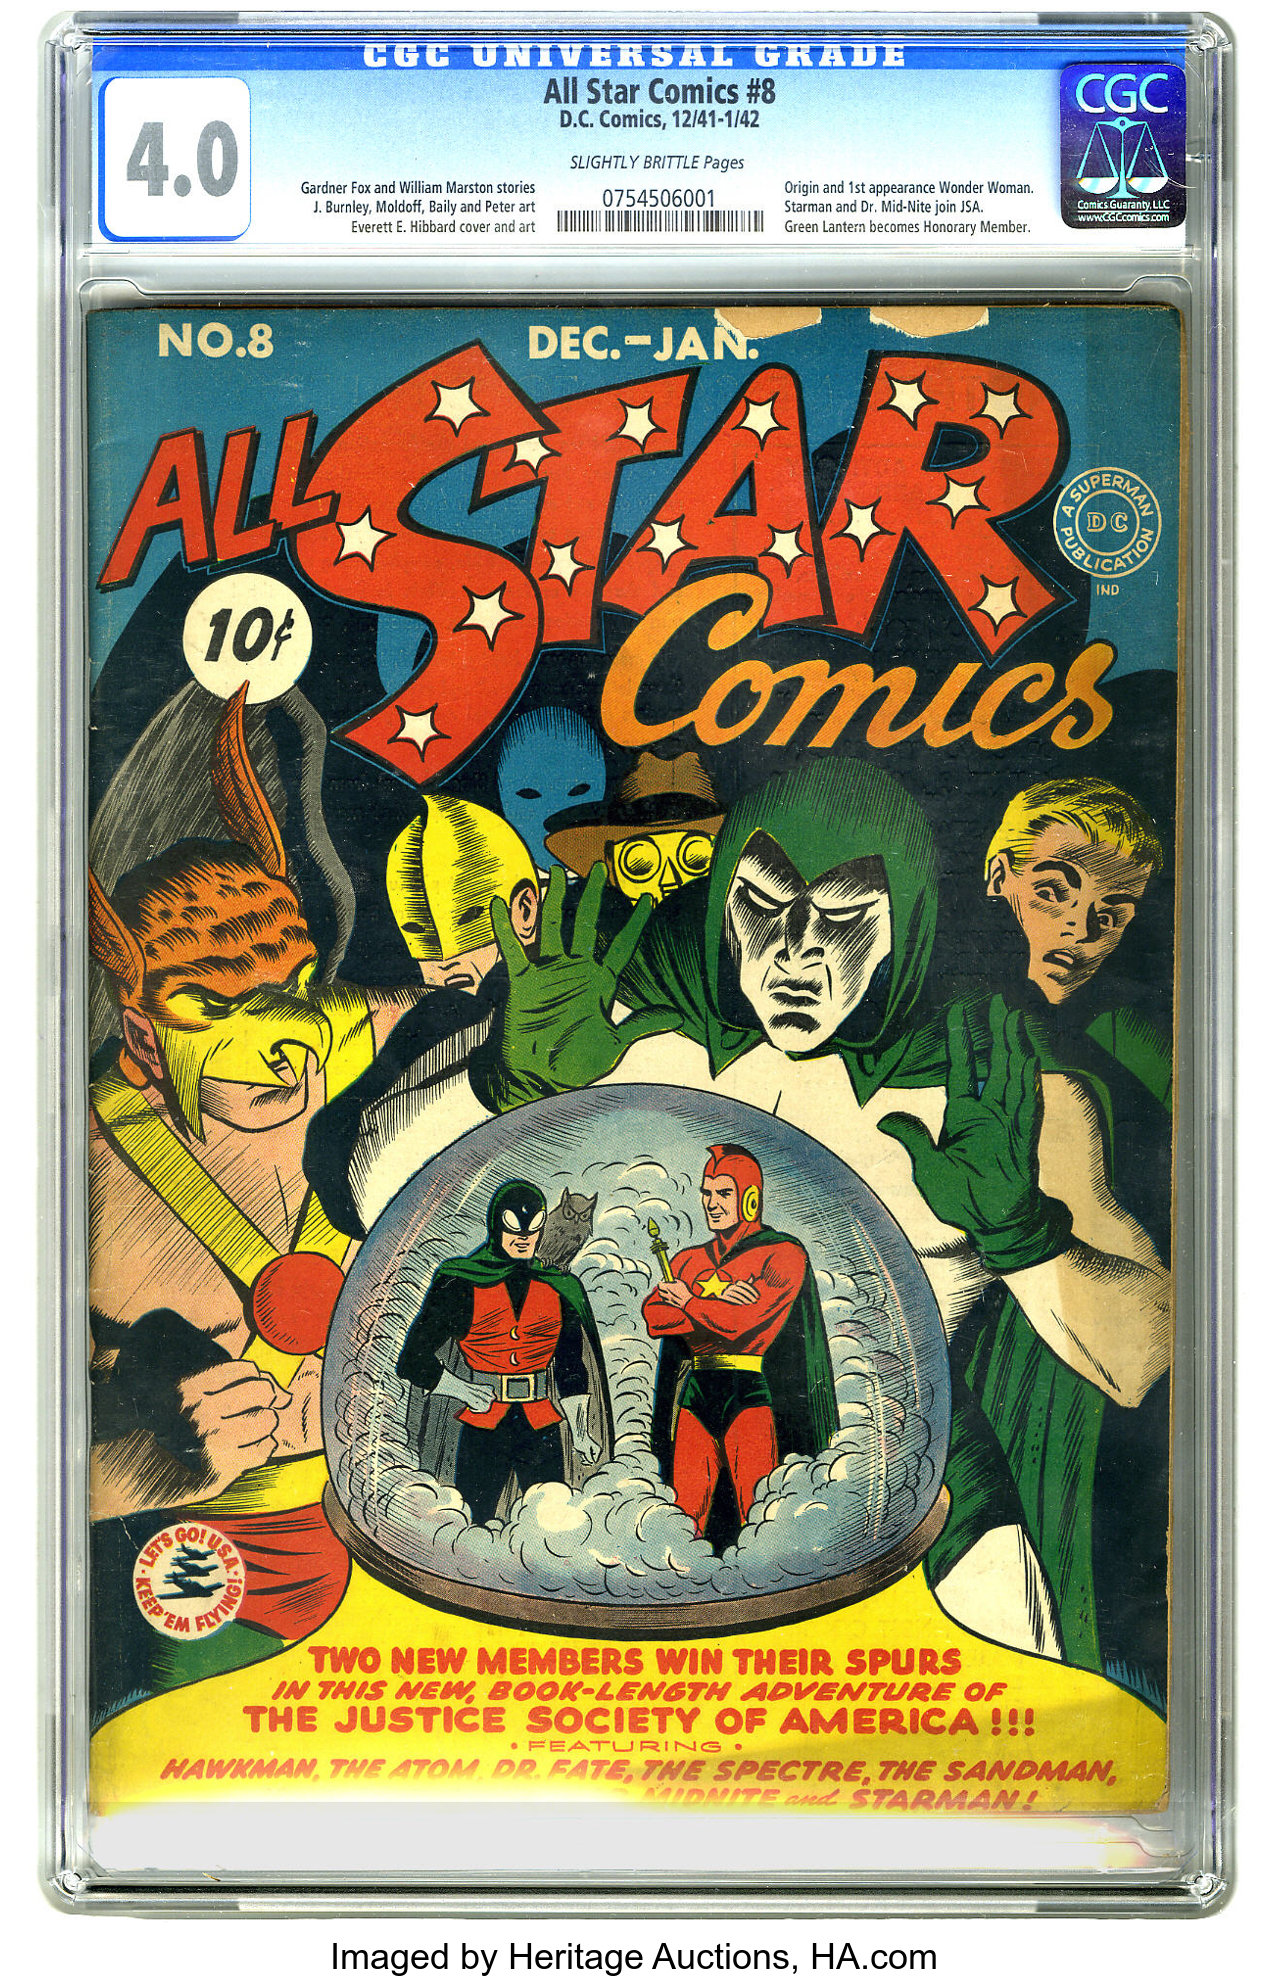 All Star Comics #8 (DC, 1942) CGC VG 4 0 Slightly brittle